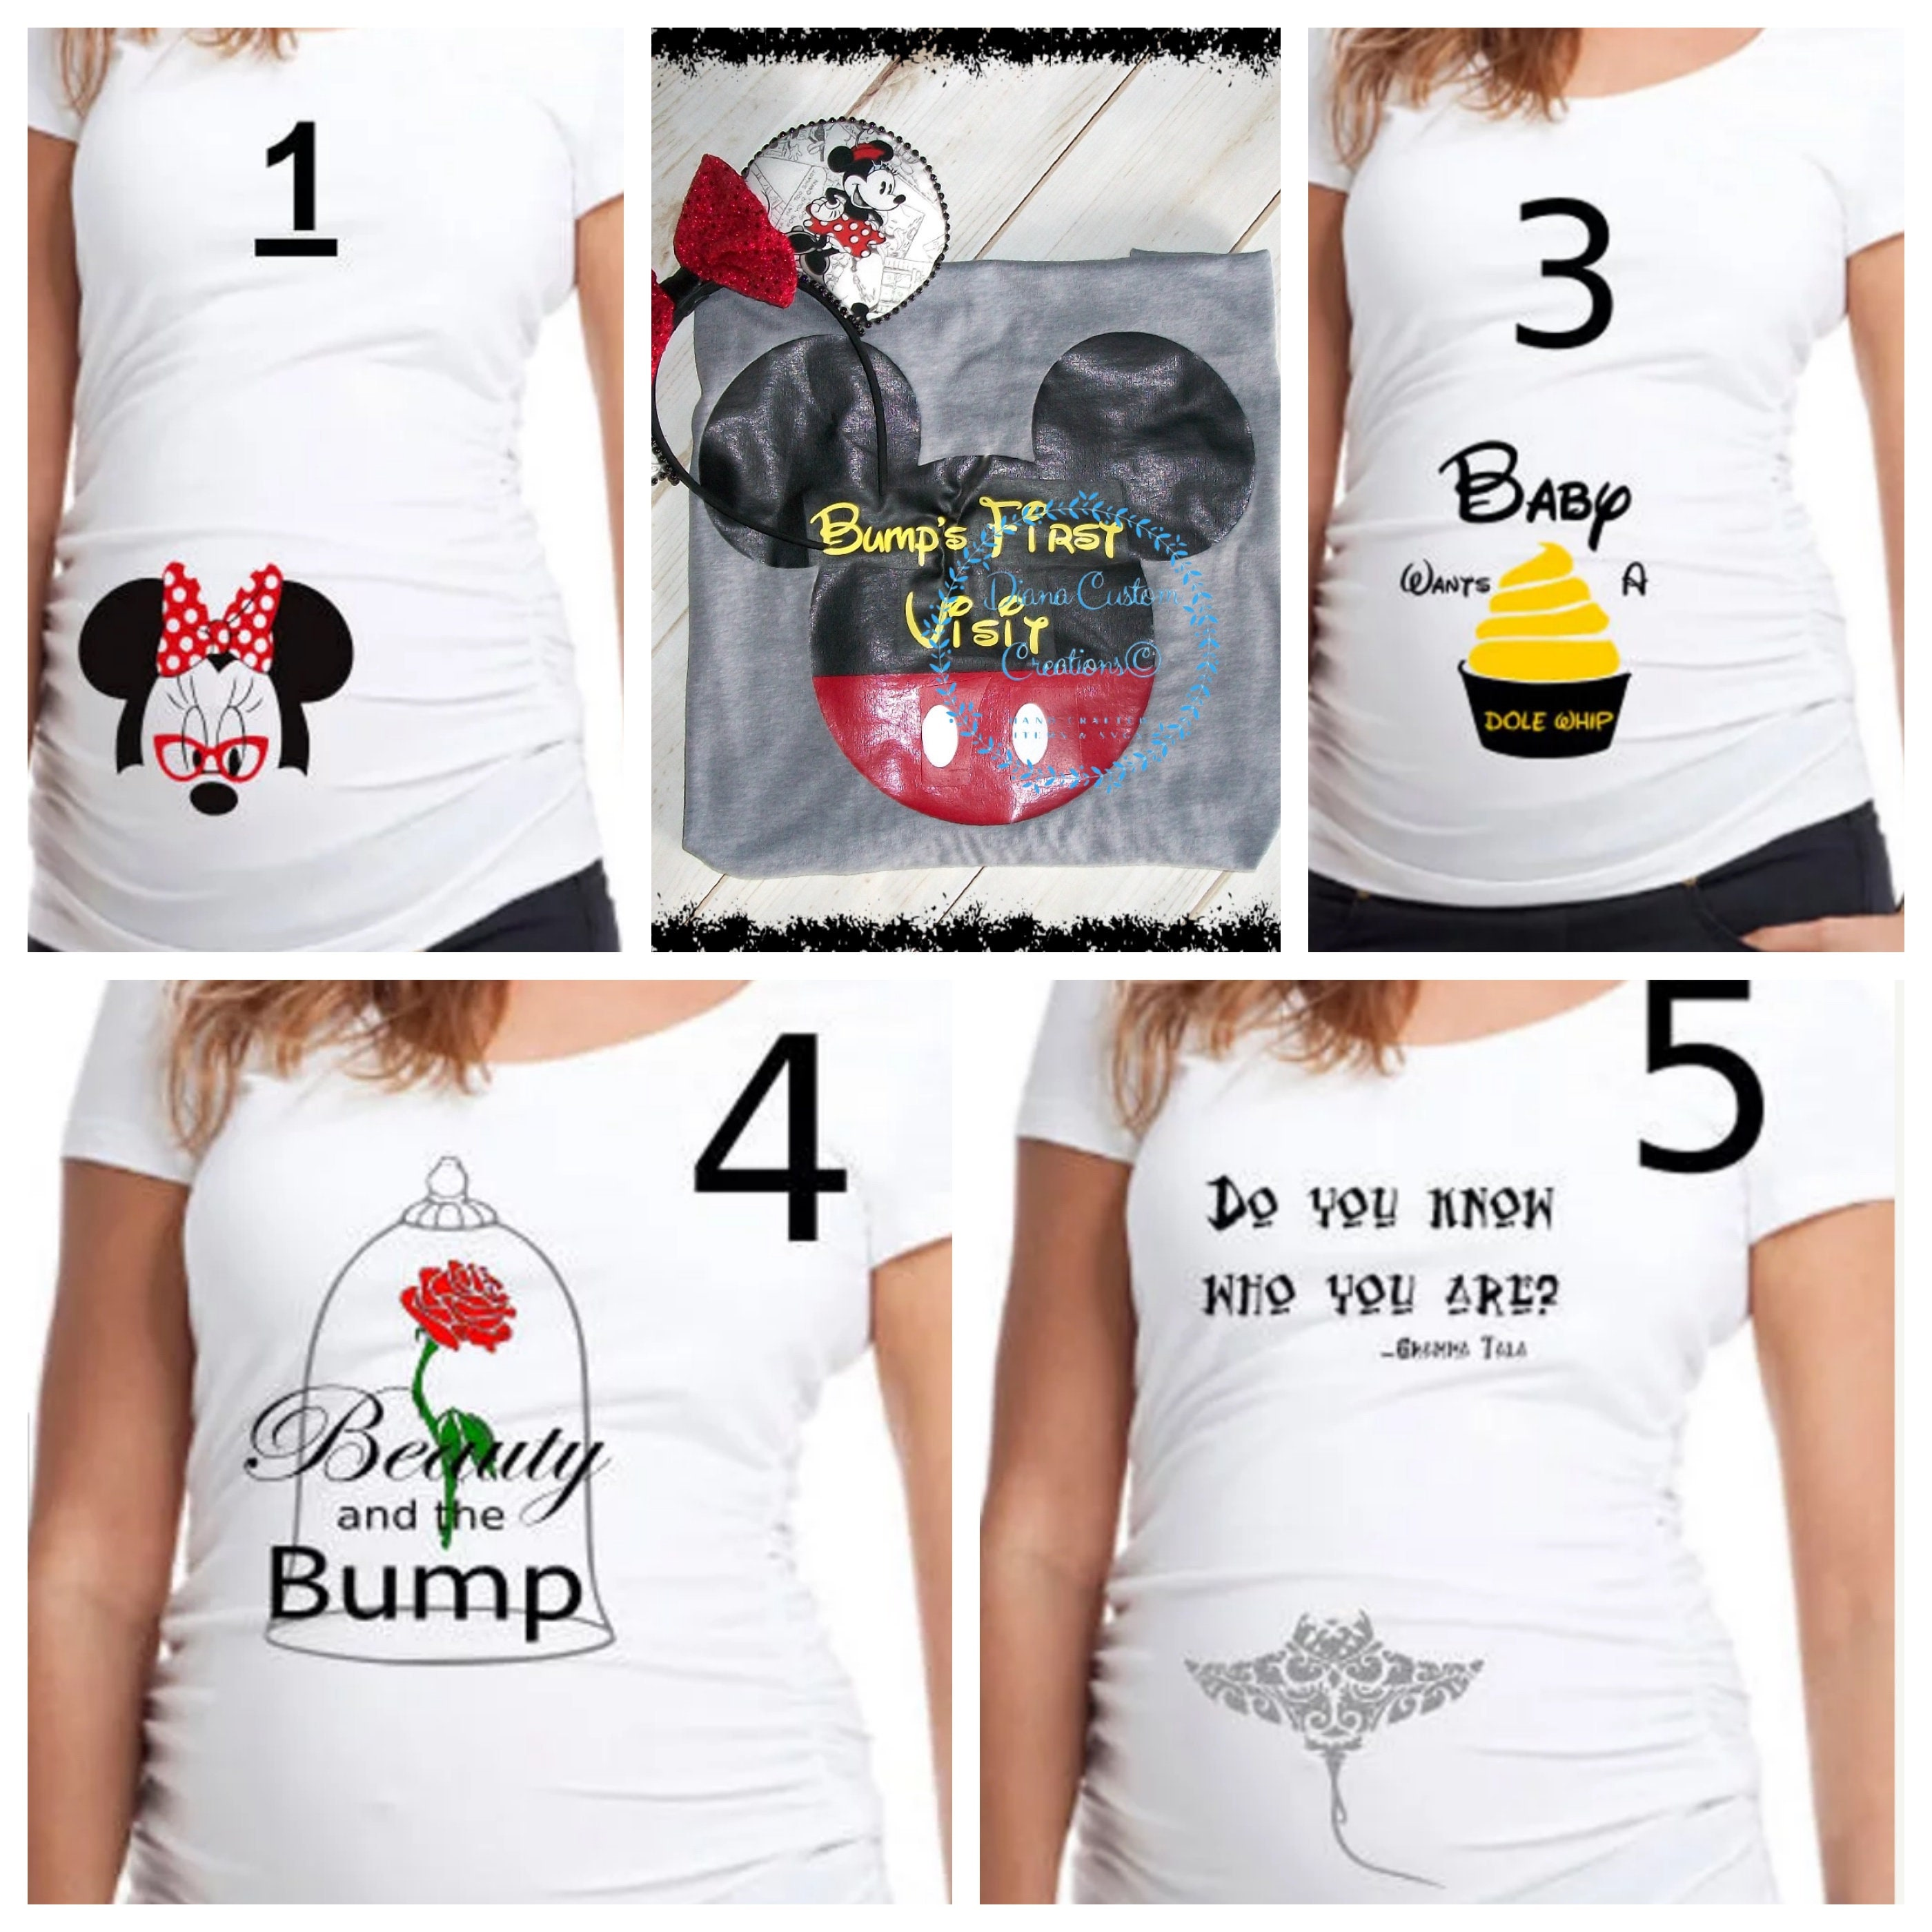 acdb2176891be Disney Shirt, Maternity, Maternity shirt, Disney Maternity, Disney  Maternity Tee, New Baby, New Mom, Baby Announcement, Disney Baby